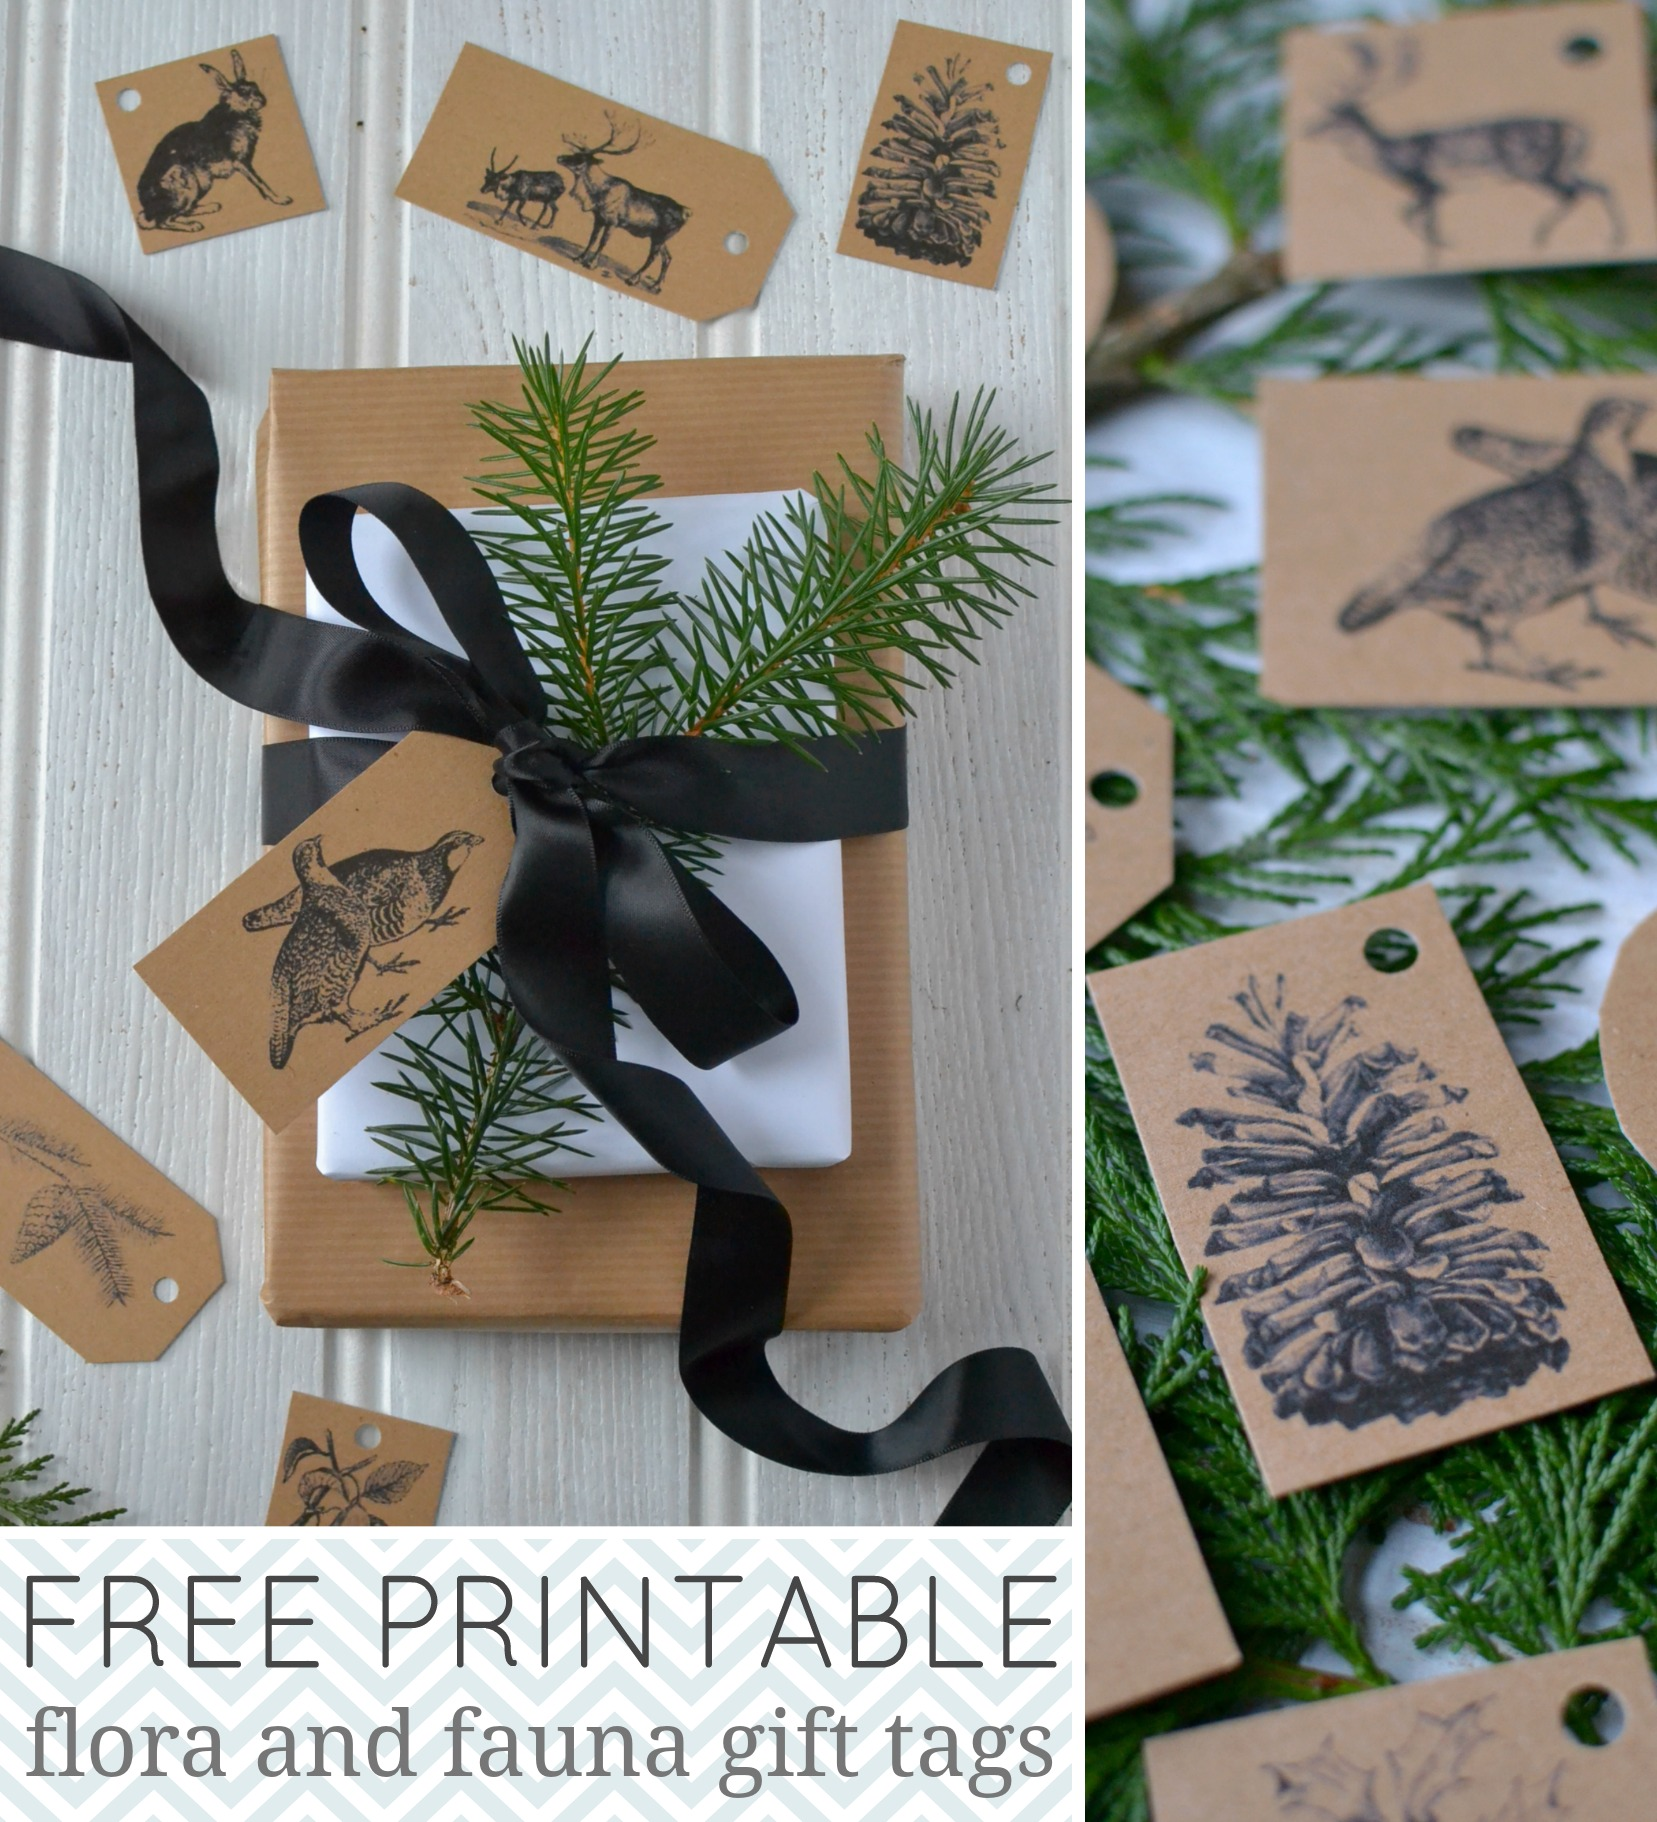 Free printable Christmas holiday gift tags from Decorator's Notebook